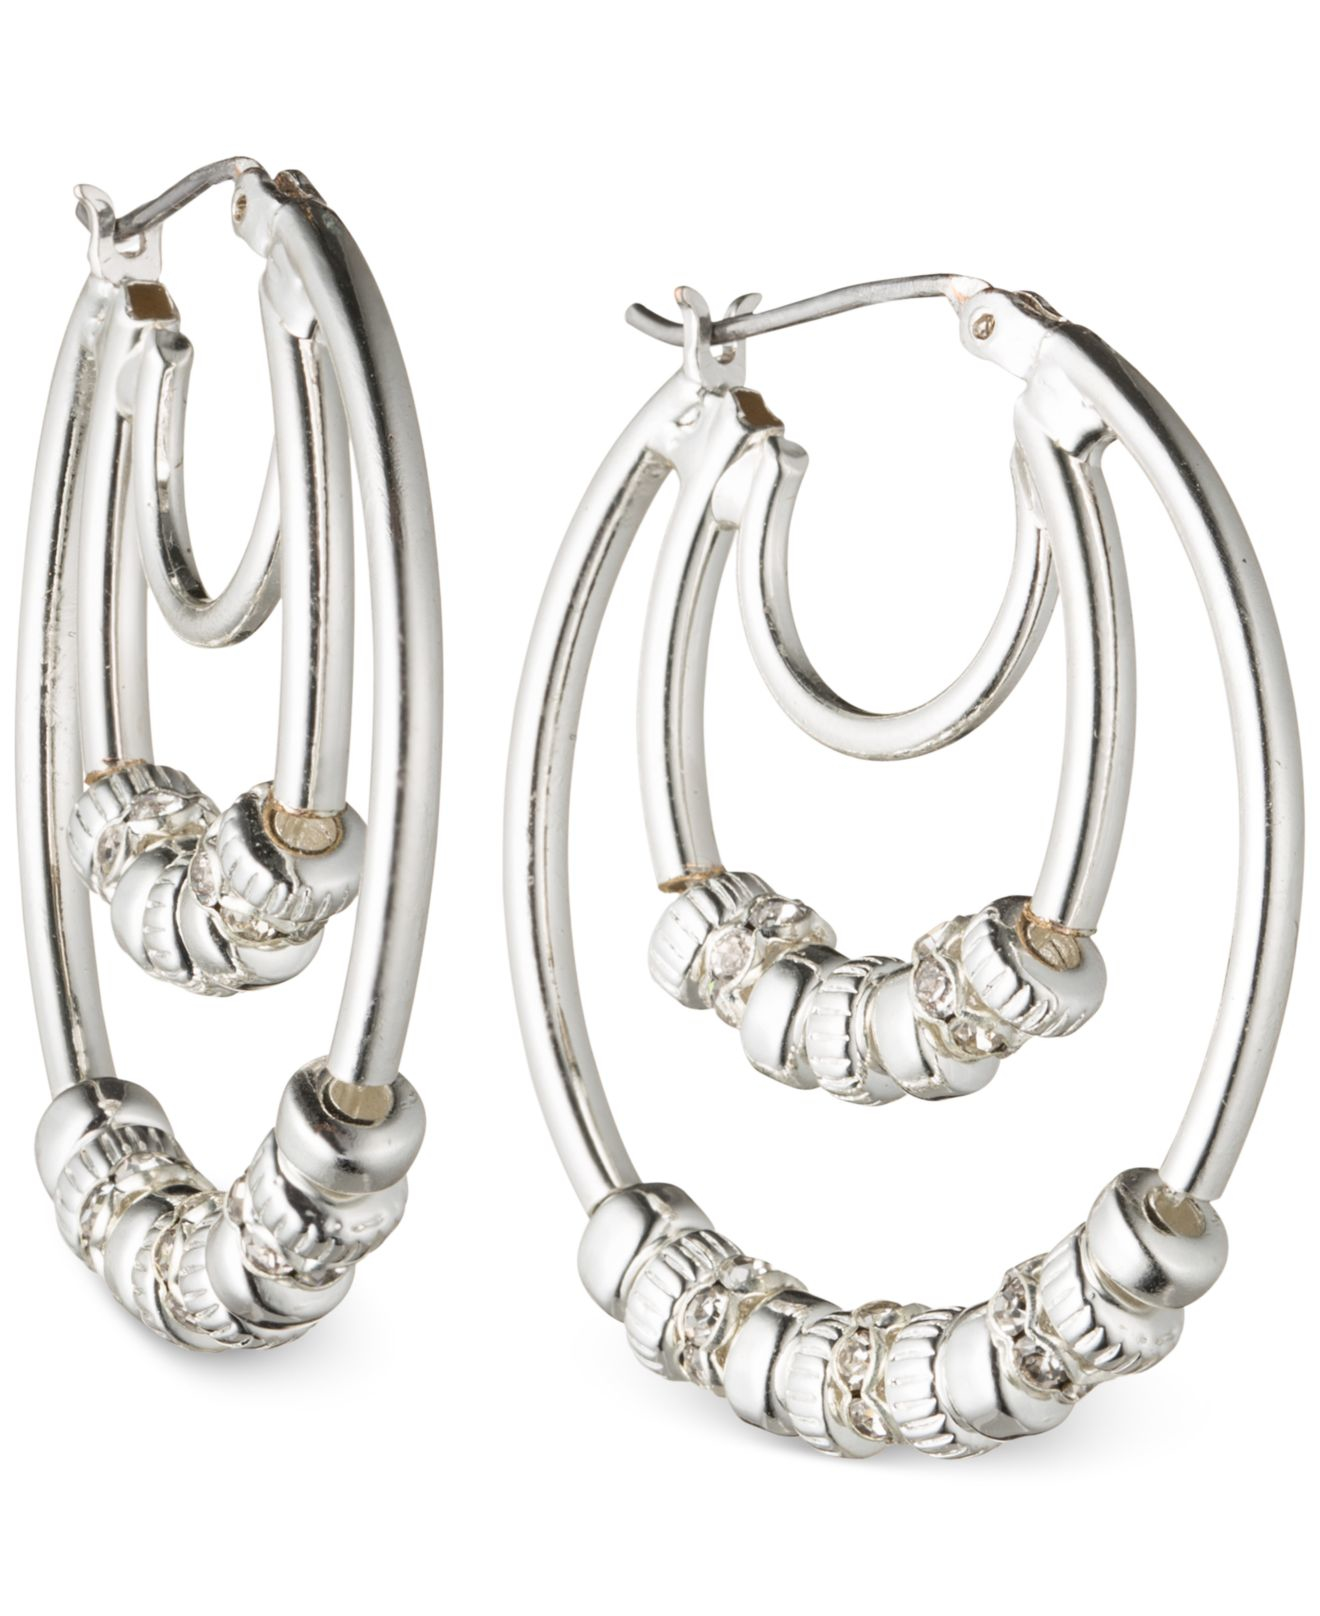 Luxury  Silversmiths  Women39s Silver And Turquoise Studded Hoop Earrings